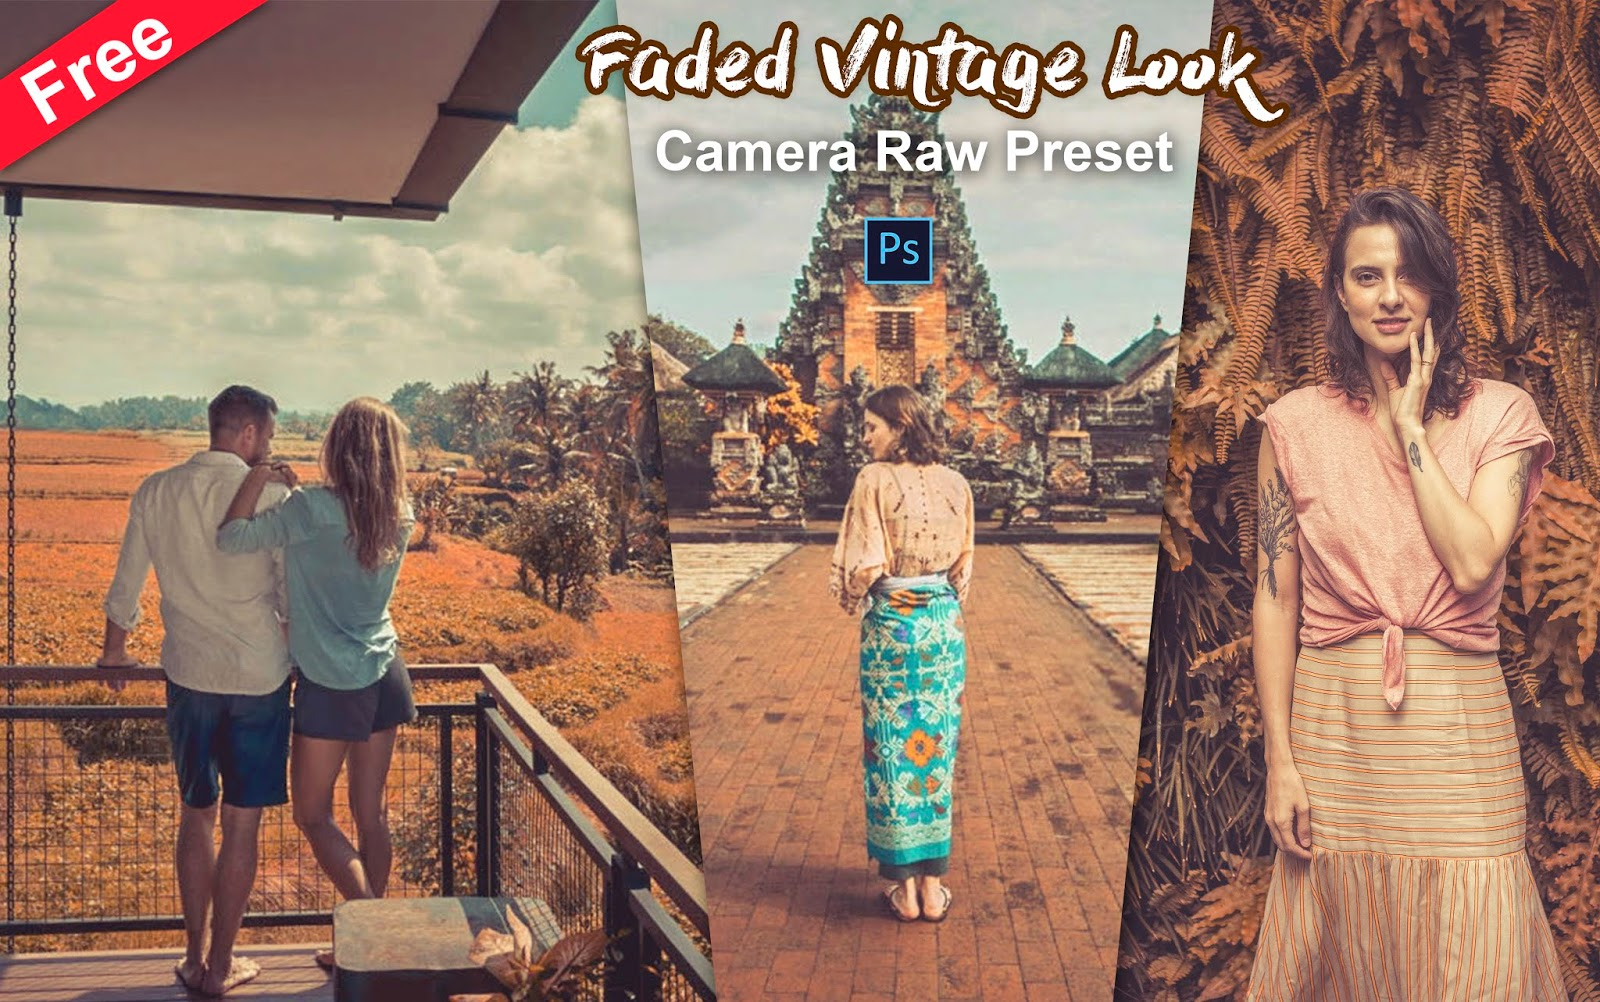 Download Faded Vintage Look Preset Camera Raw Preset for Free | How to Edit Your Photos Like Vintage Faded Look in Photoshop | Bali Presets